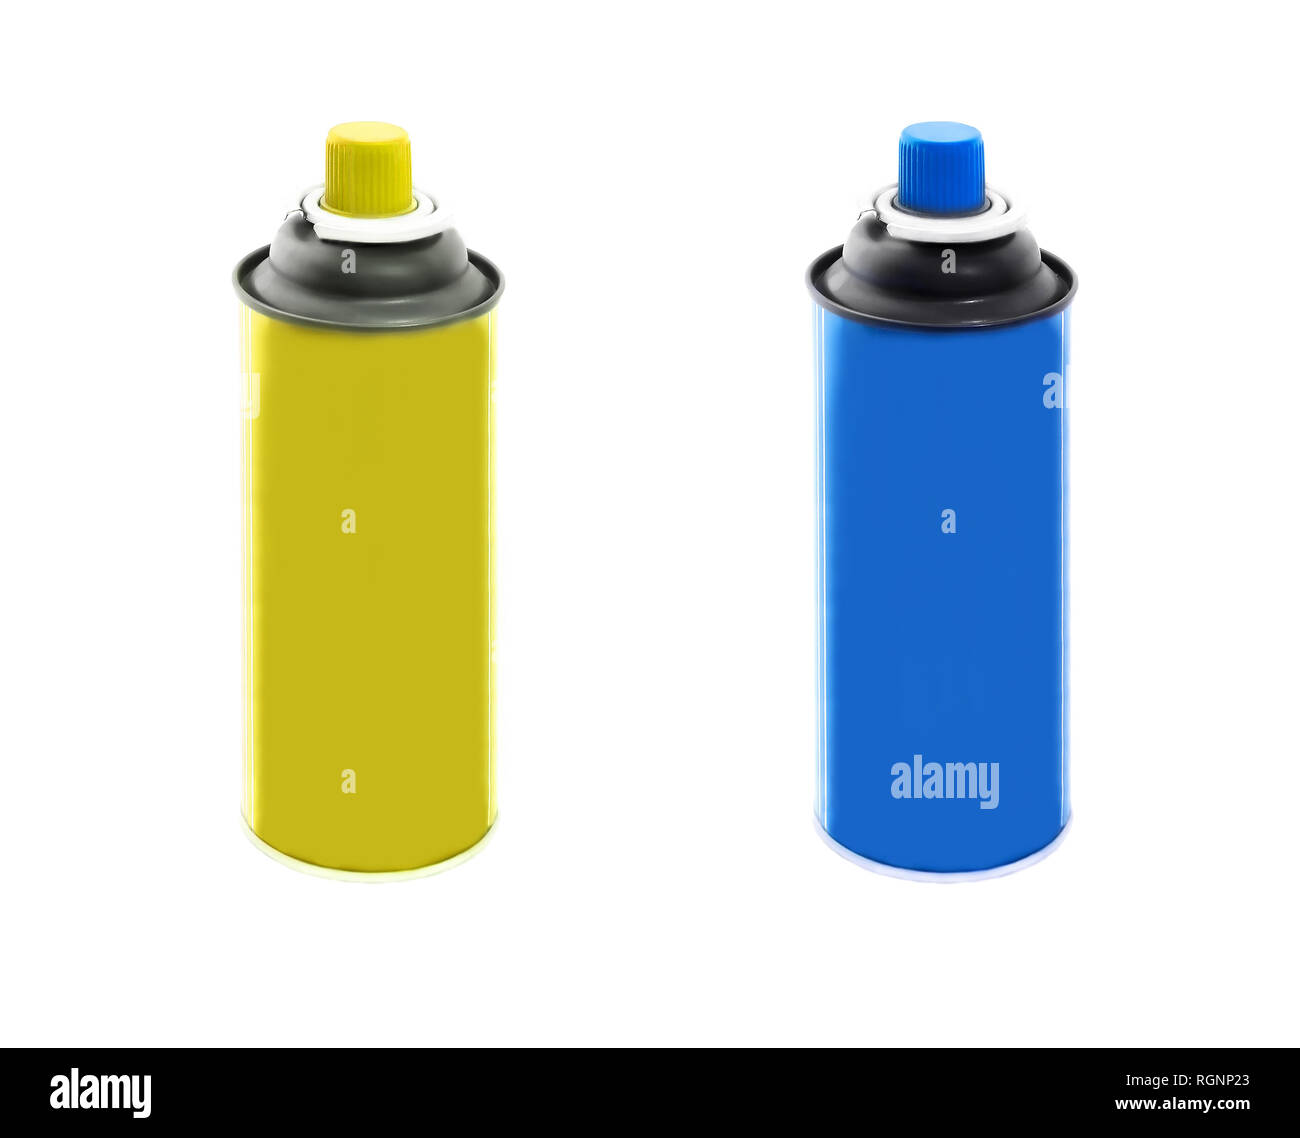 Set of blue and yellow plastic containers isolated on white background - Stock Image